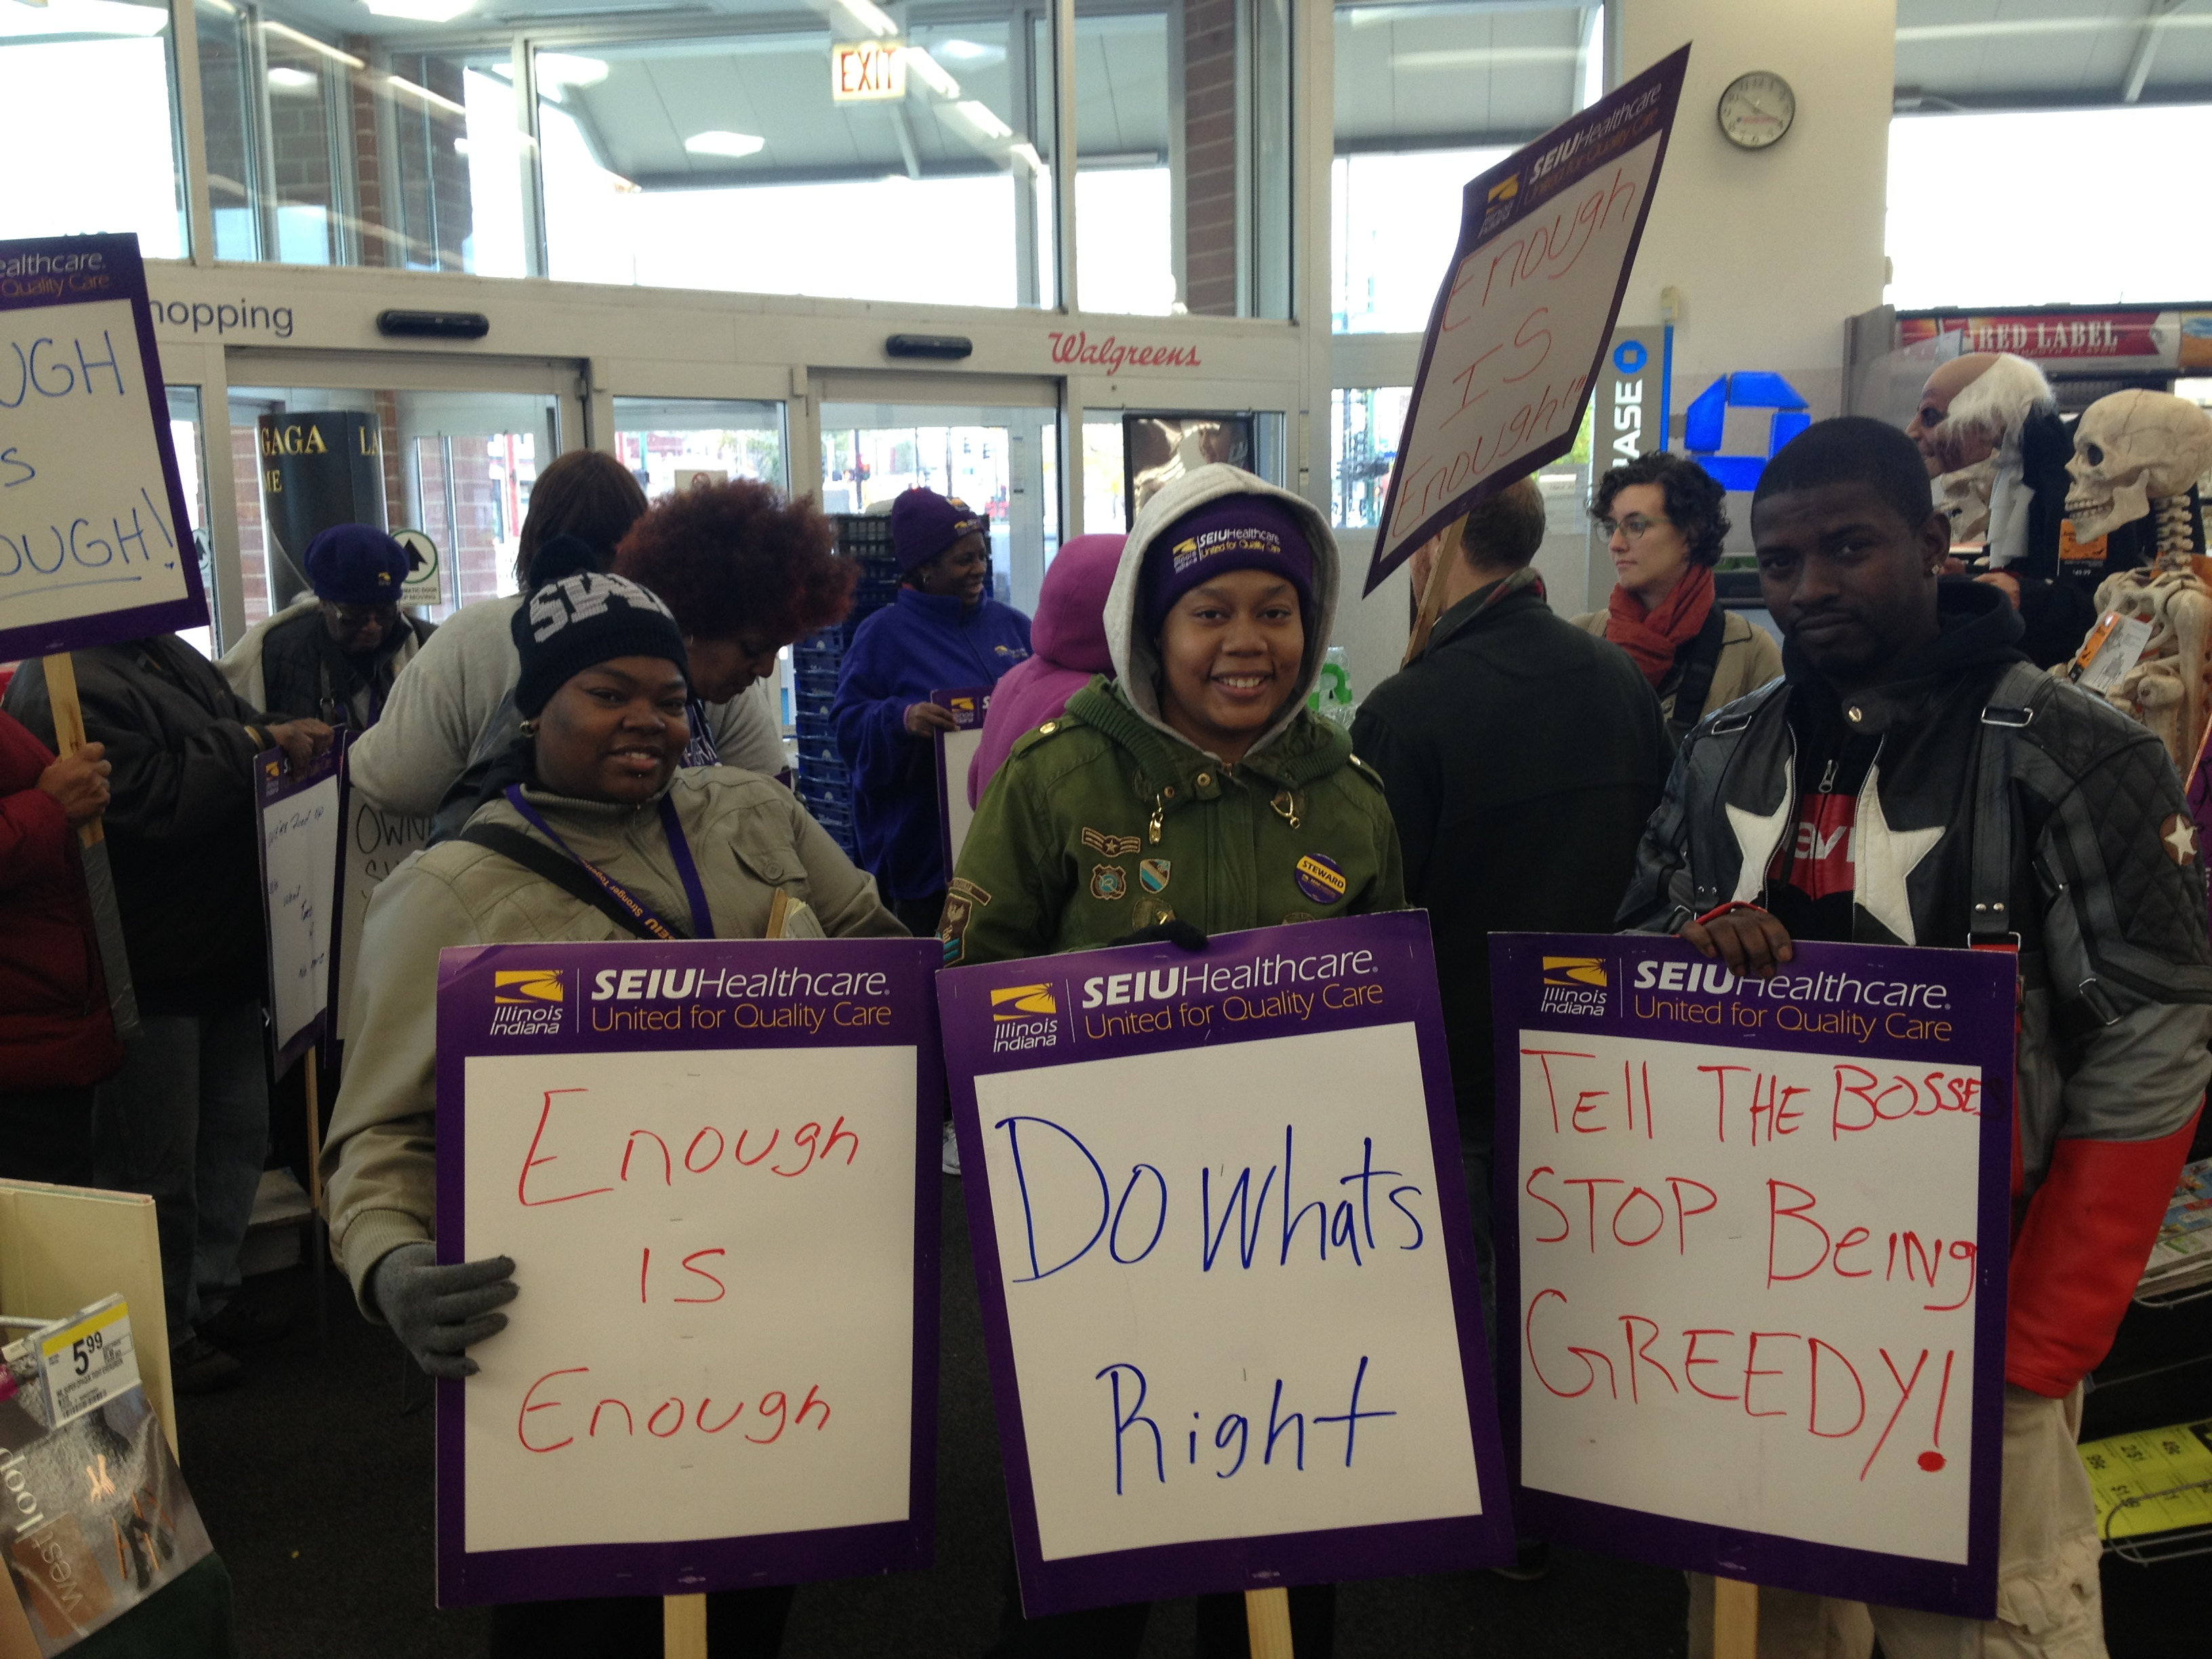 South Side of Chicago: workers call on Walgreens CEO to support the fair tax, Nov. 1, 2013